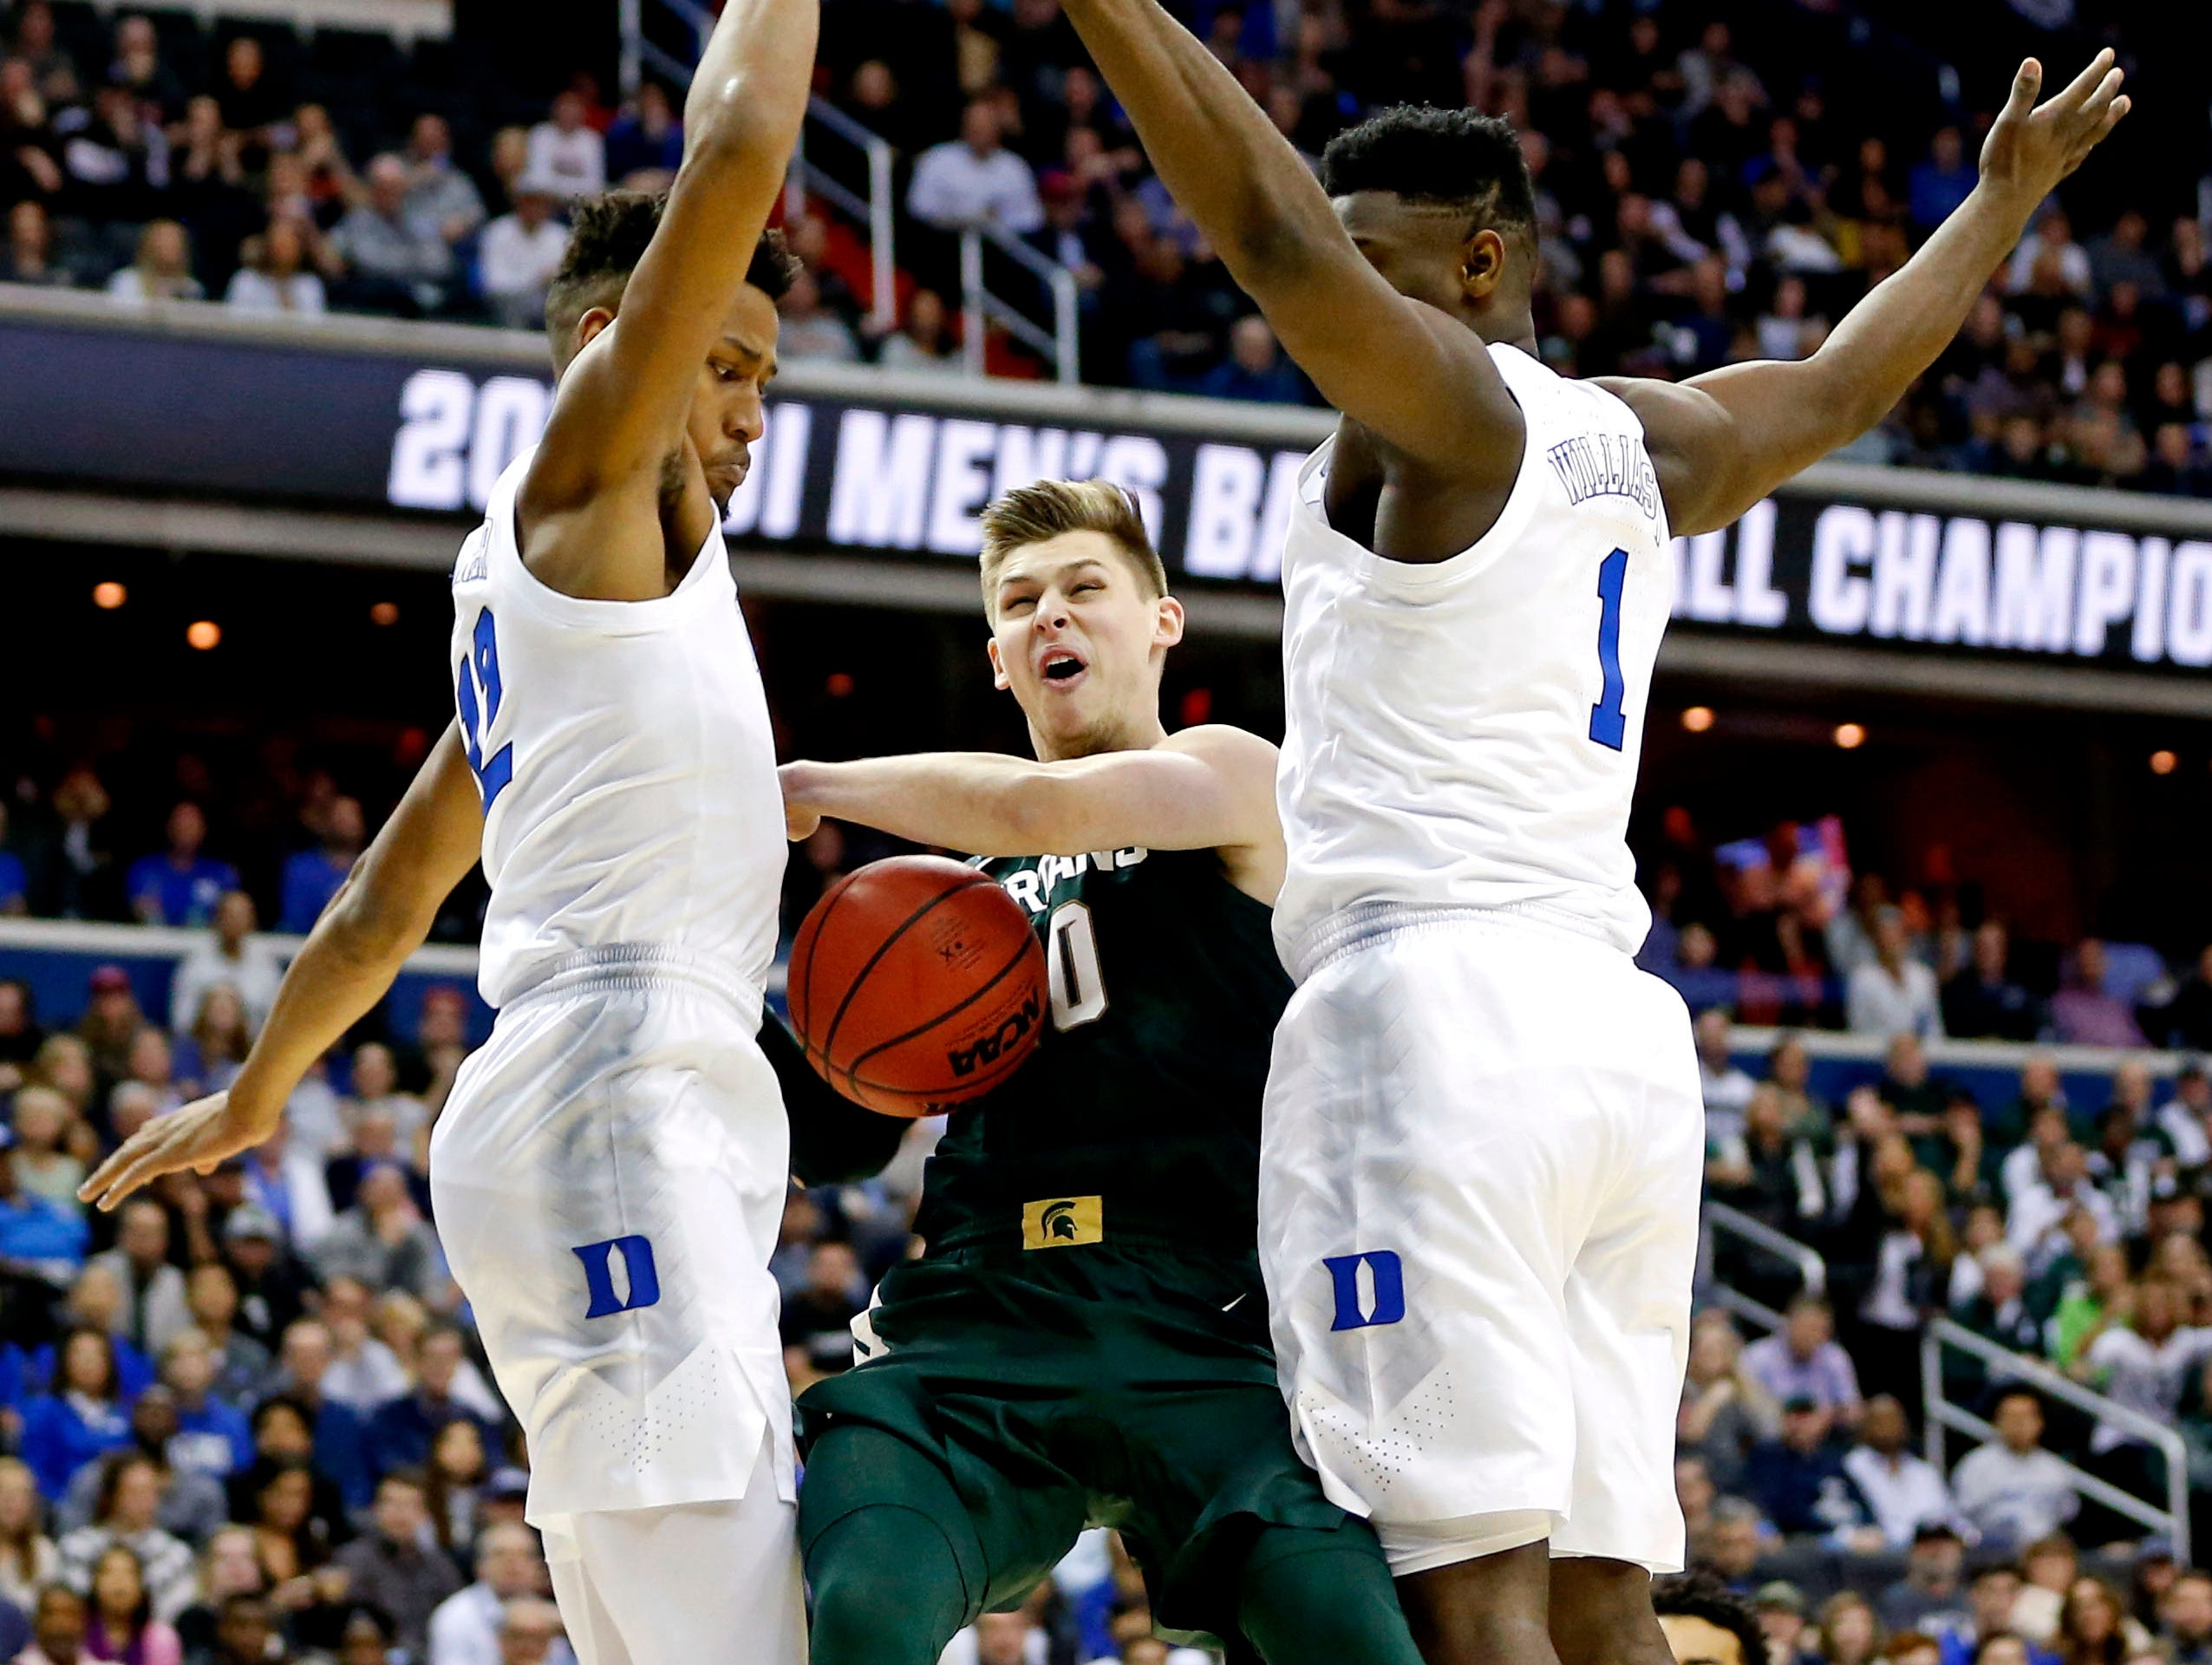 Michigan State Spartans guard Matt McQuaid (20) drives to the basket against Duke Blue Devils forward Zion Williamson (1) during the first half in the championship game of the east regional of the 2019 NCAA Tournament at Capital One Arena.